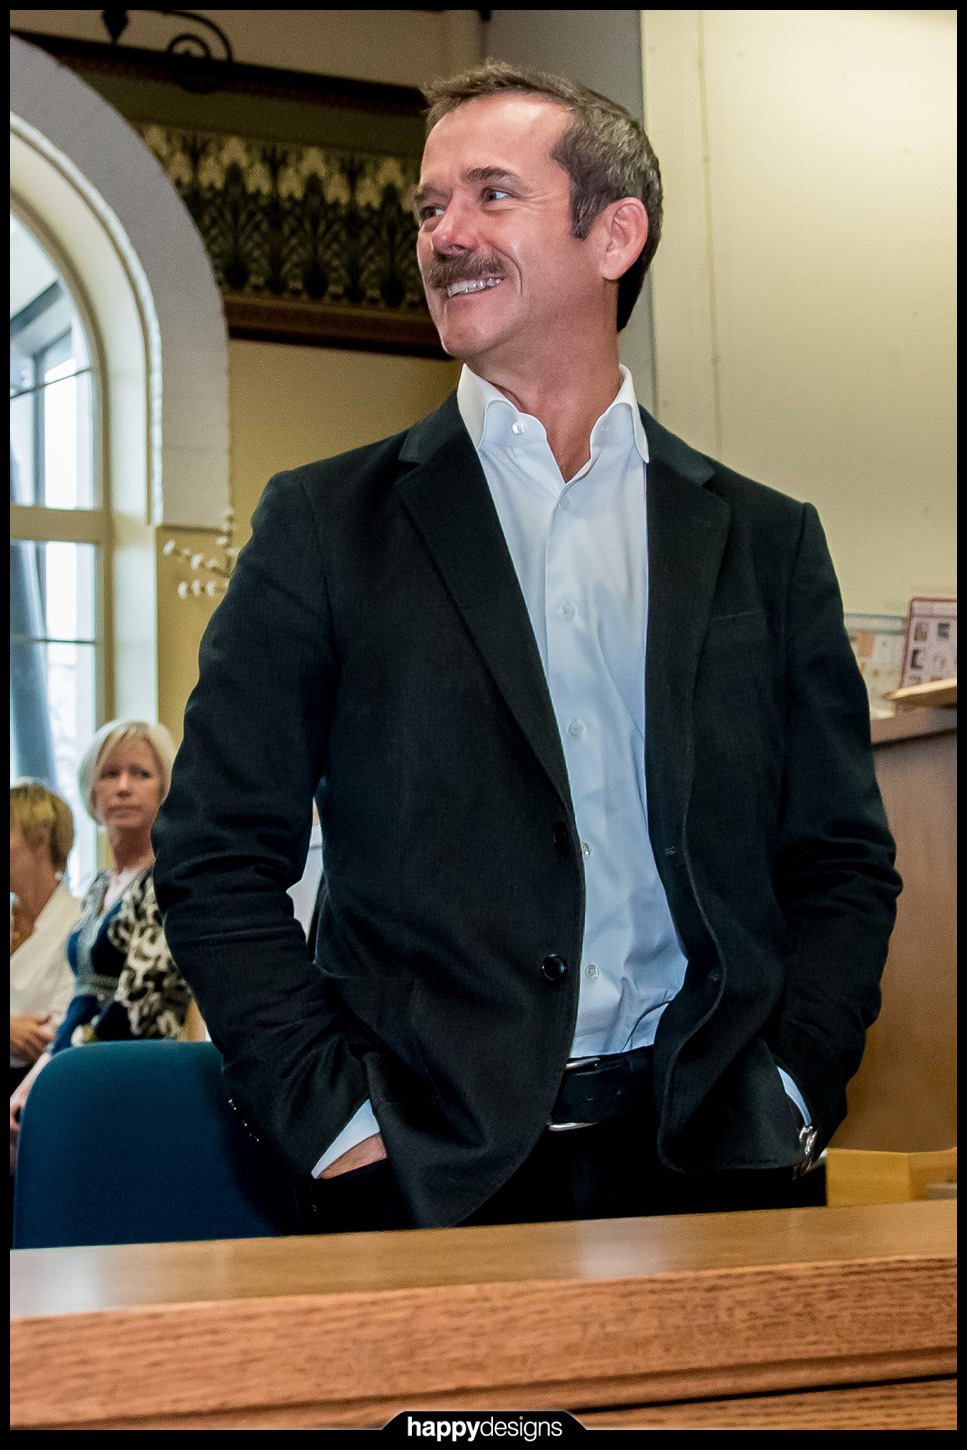 20131118 - Cmdr Chris Hadfield